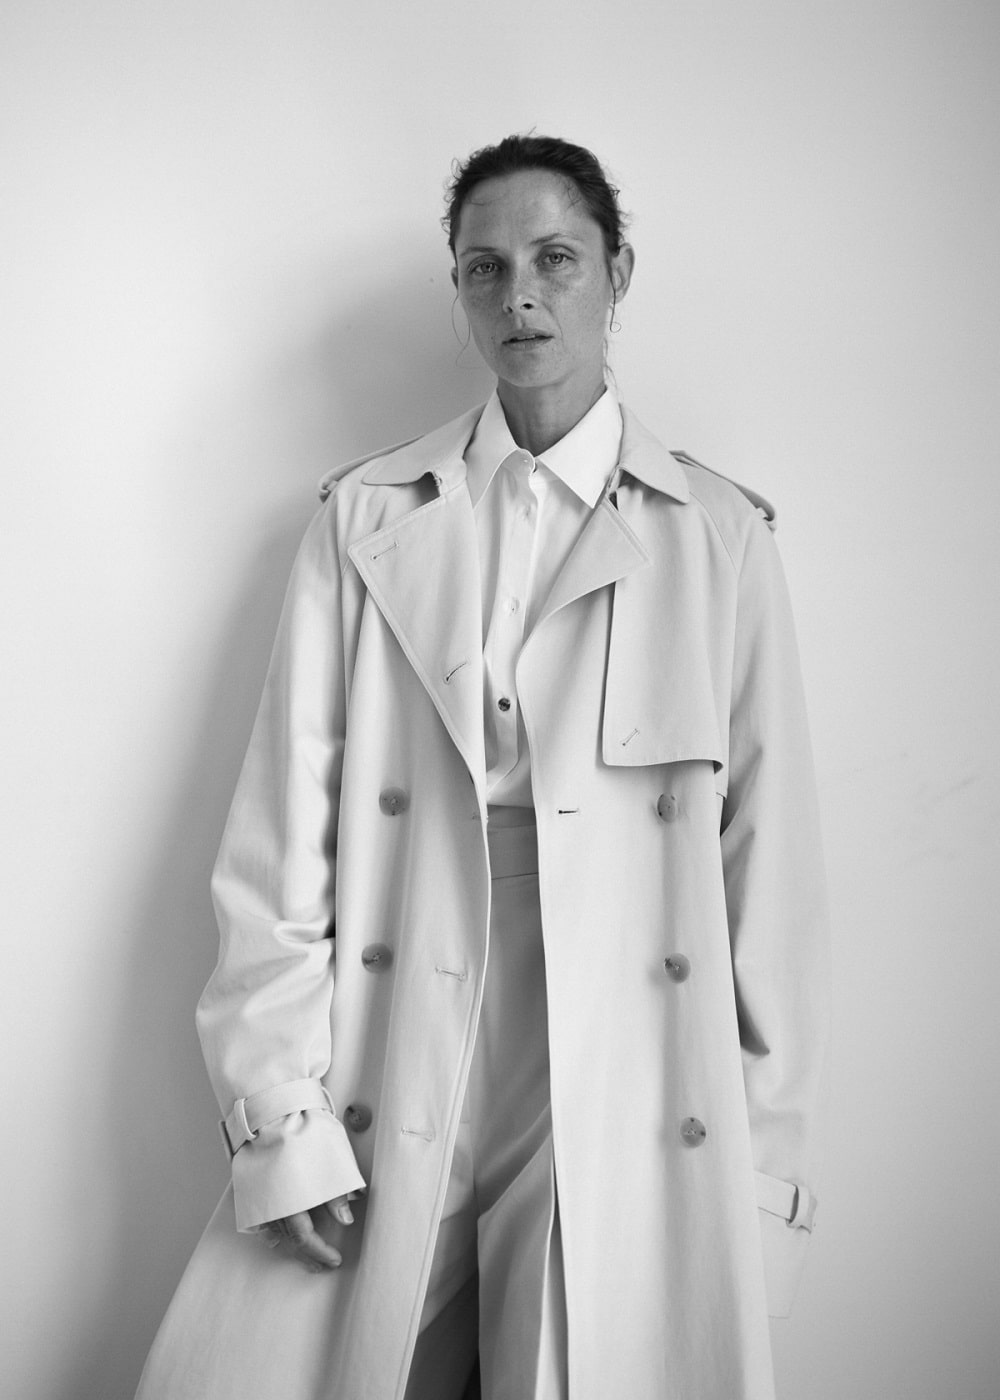 Tasha-Tilberg-by-Mark-Rabadan-for-Collection-Issue-Fall-Winter-2019-7.jpg